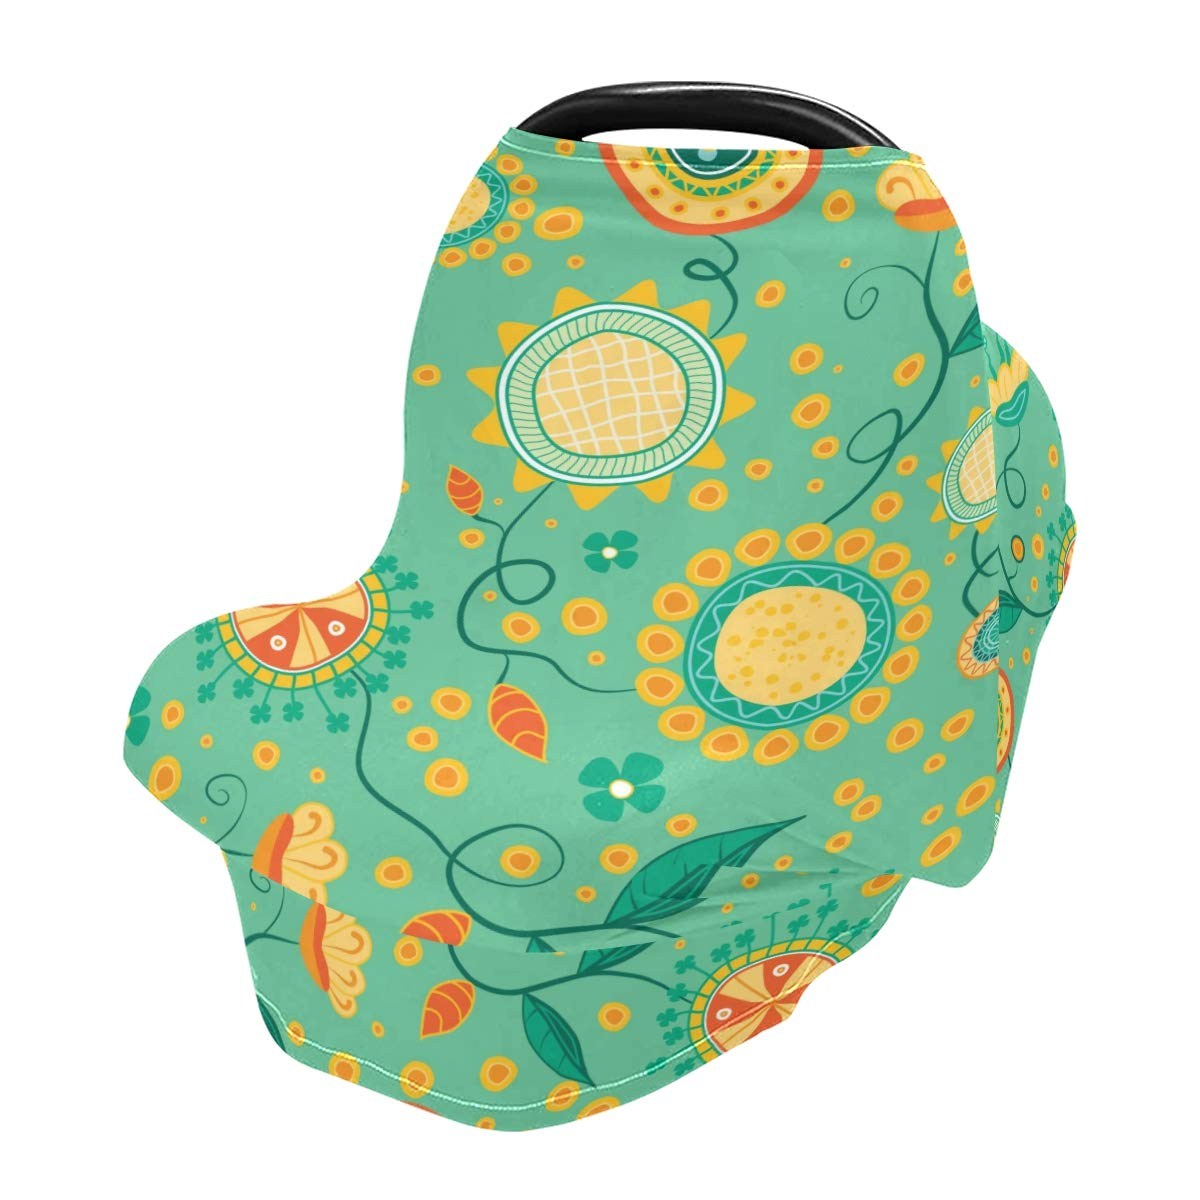 Nursing Cover Breastfeeding Scarf, Gold Folwers Car Seat Covers for Babies Infant Stretchy Soft Breathable Multi-Use Cover Ups, Baby Shower Gift for Boys Girls